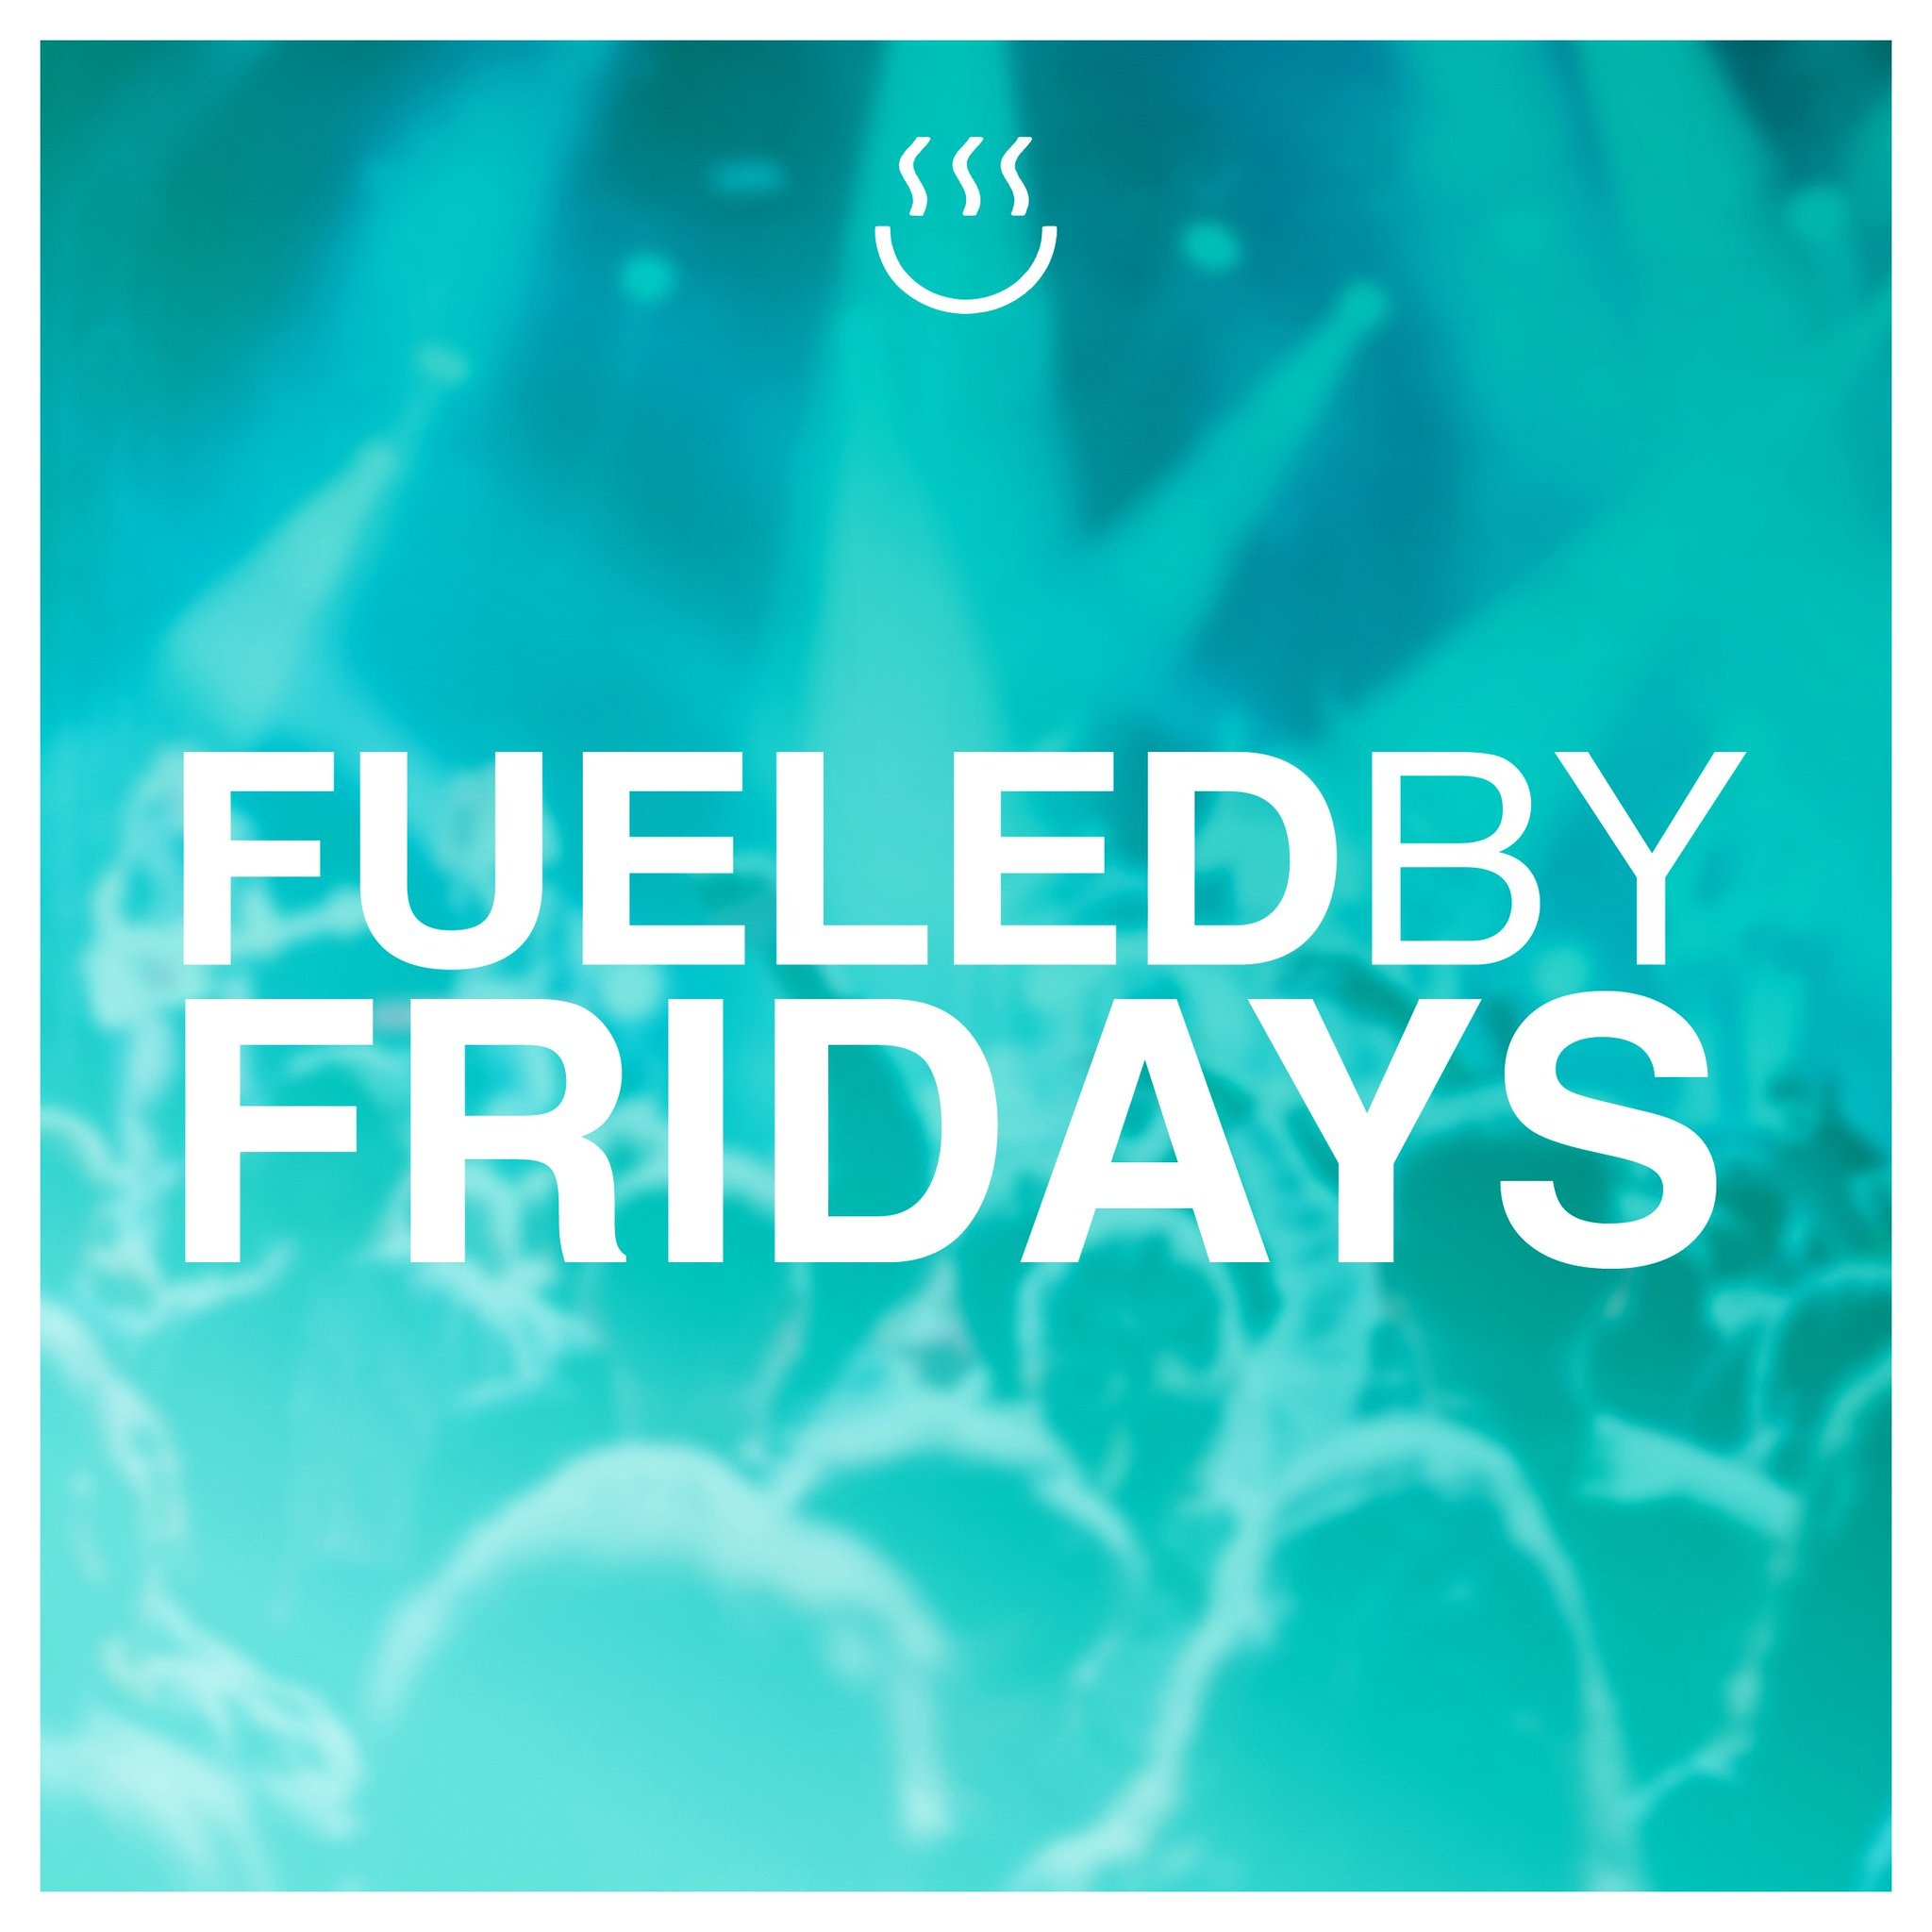 New songs, old songs, cover songs - this week's #FUELEDBYFRIDAYS Playlist has it all! https://t.co/sQao4itgsW https://t.co/A1P8ijNh8p